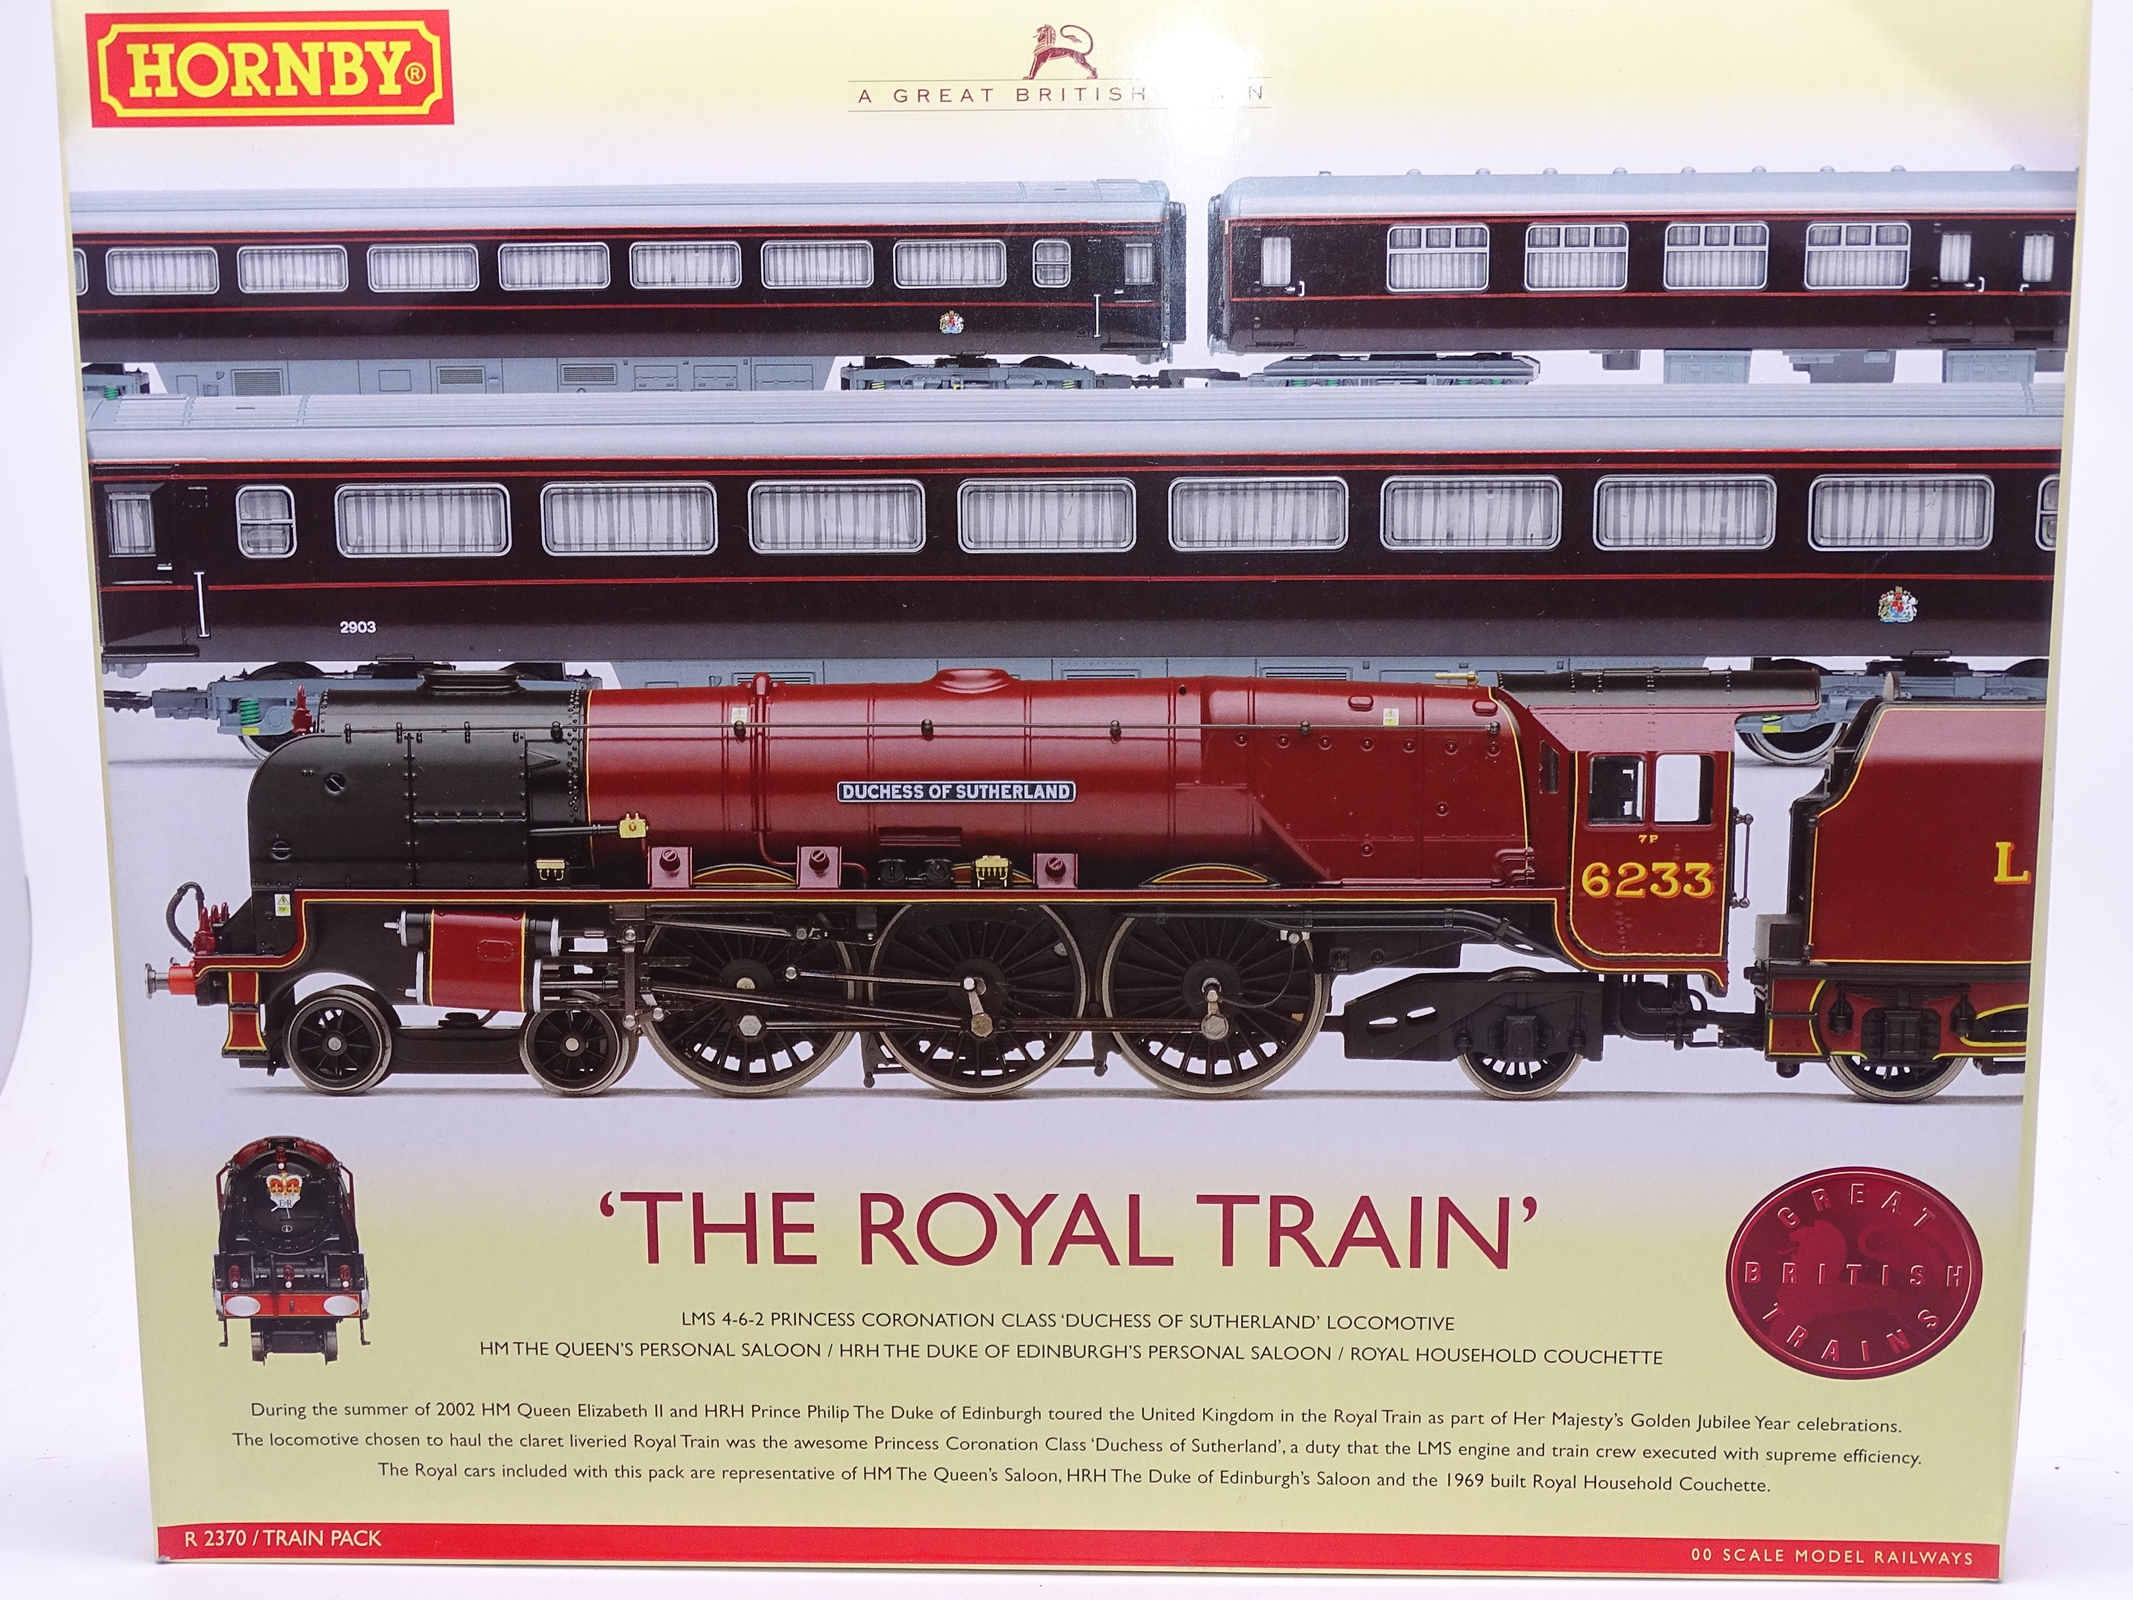 Lot 60 - OO Gauge -A Hornby R370 'The Royal Train' train pack including steam loco and 3 coaches - E,